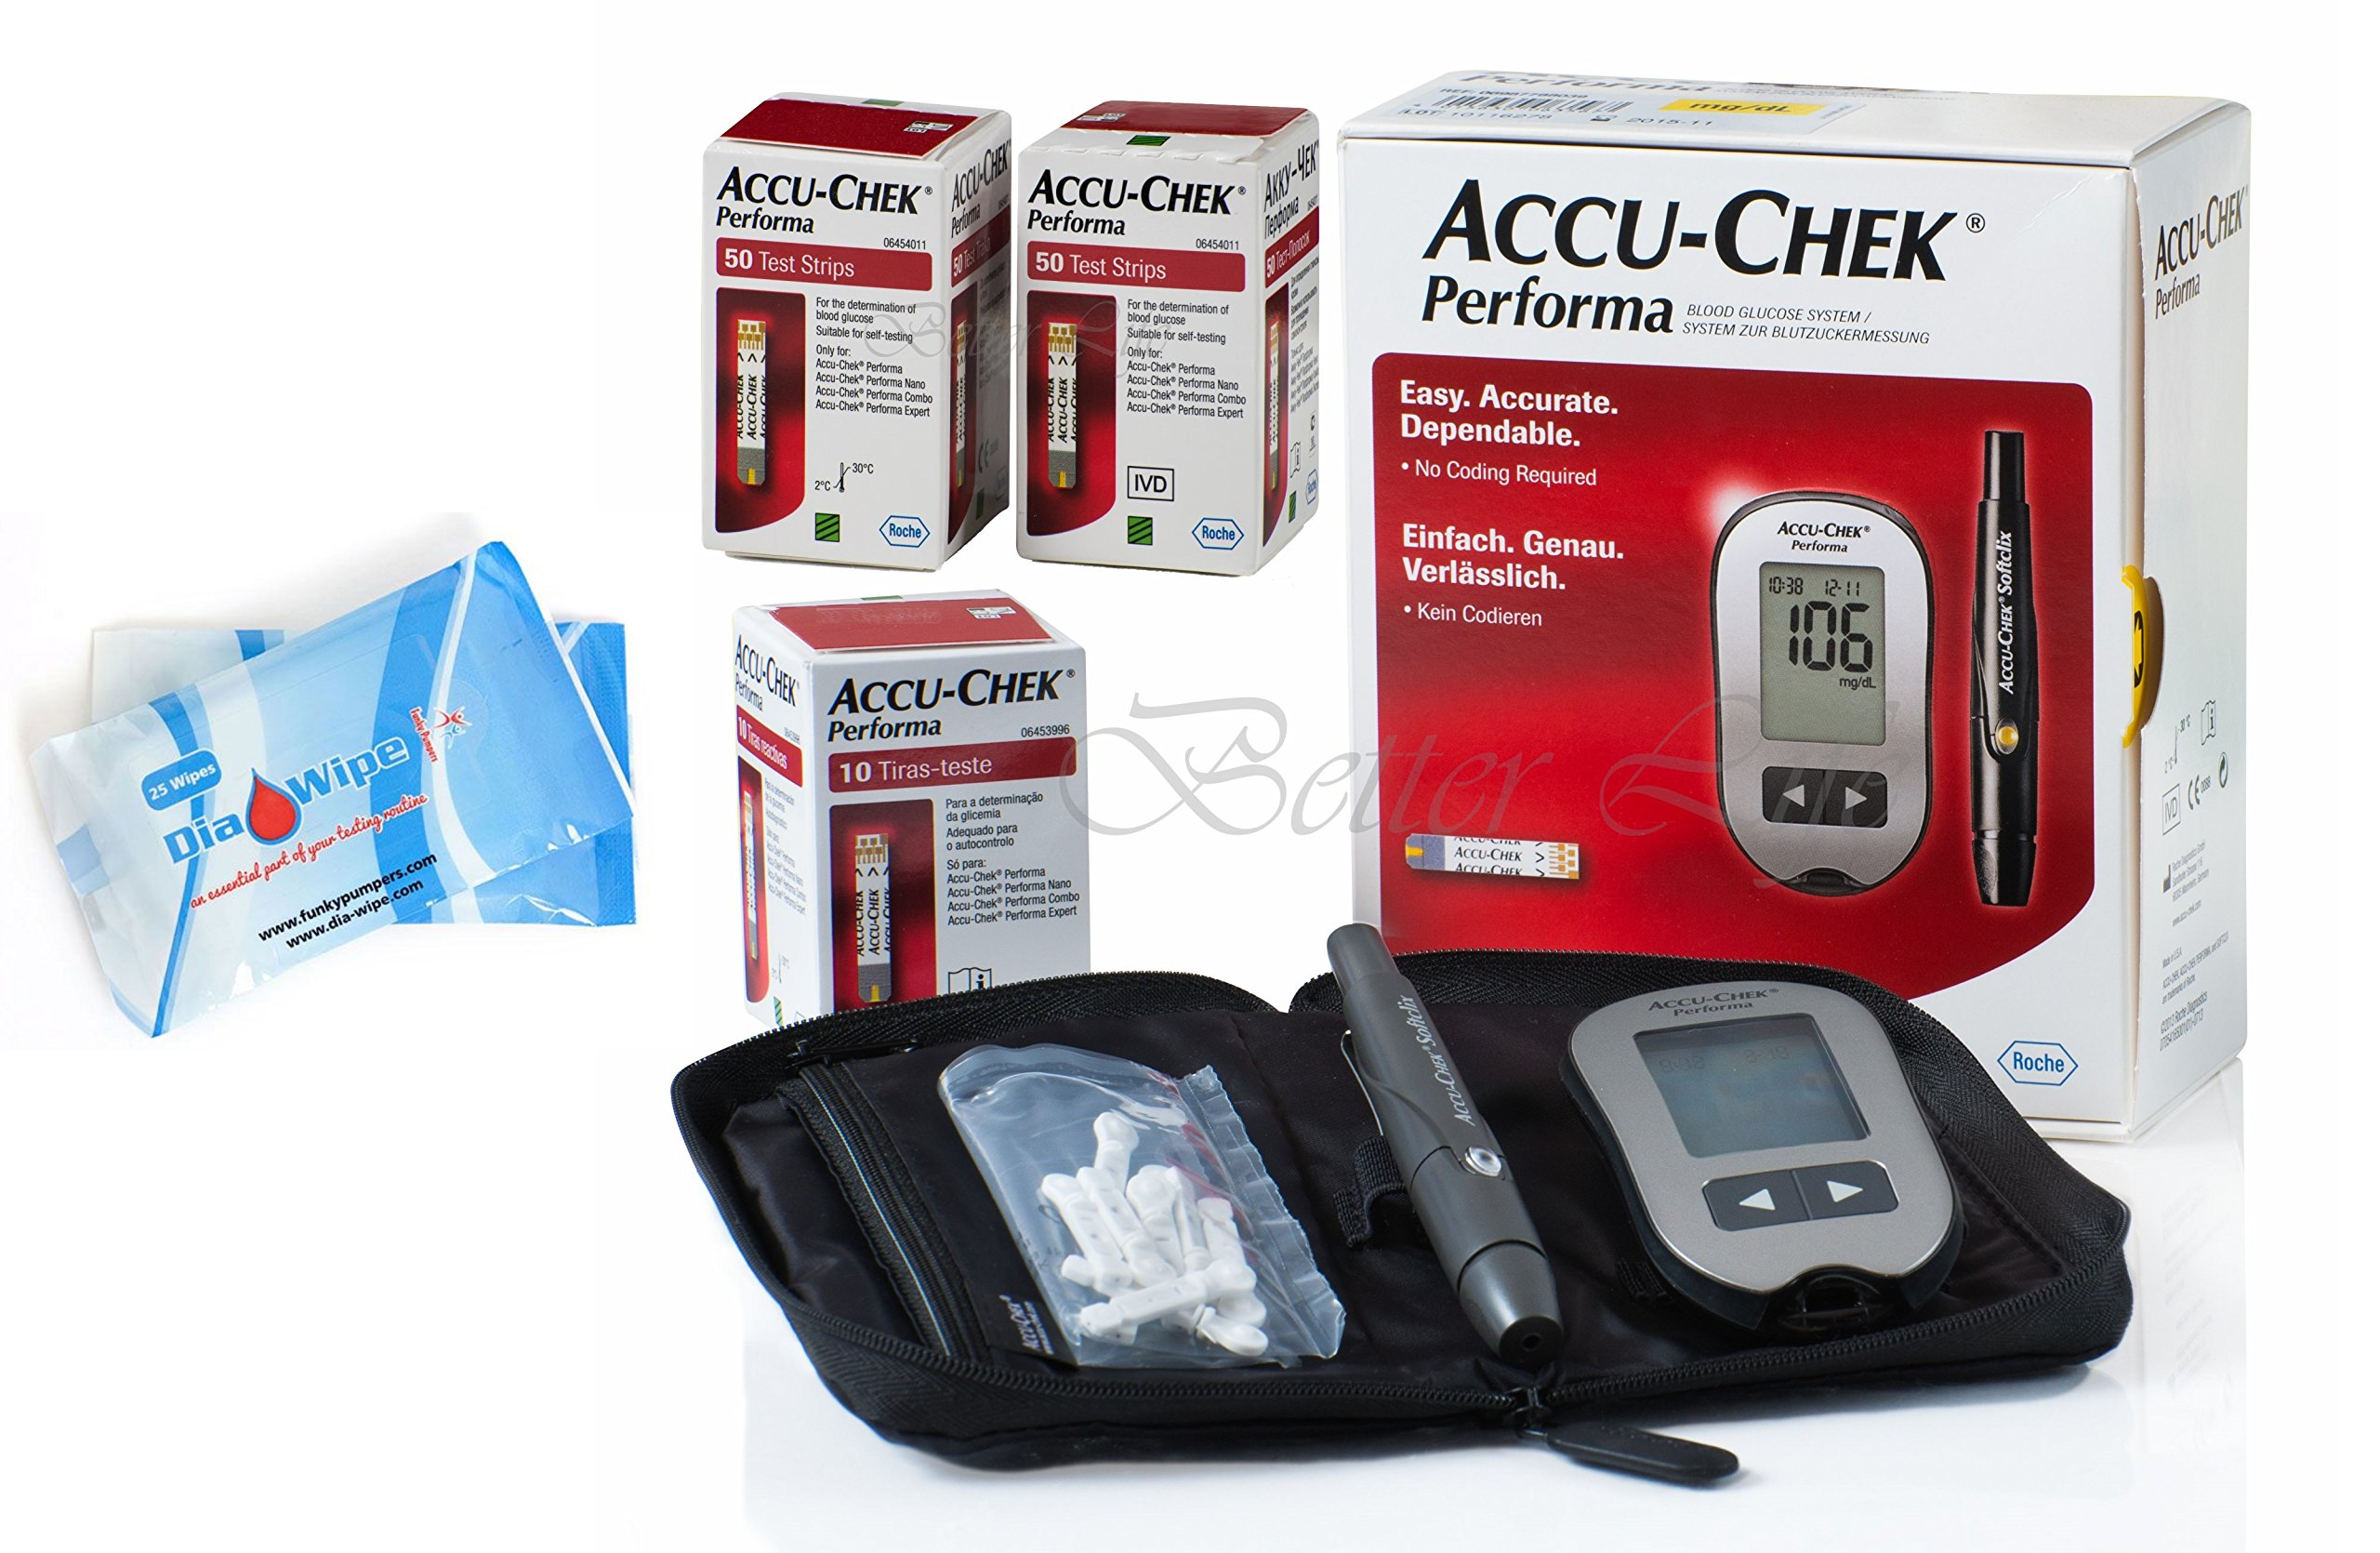 Accu Chek Performa 110 Test Strips + Glucometer Monitor + Diabetes Wipes Finger Sterilizers Cleaners for Accurate Blood Level Results - Very long Expiration Dates